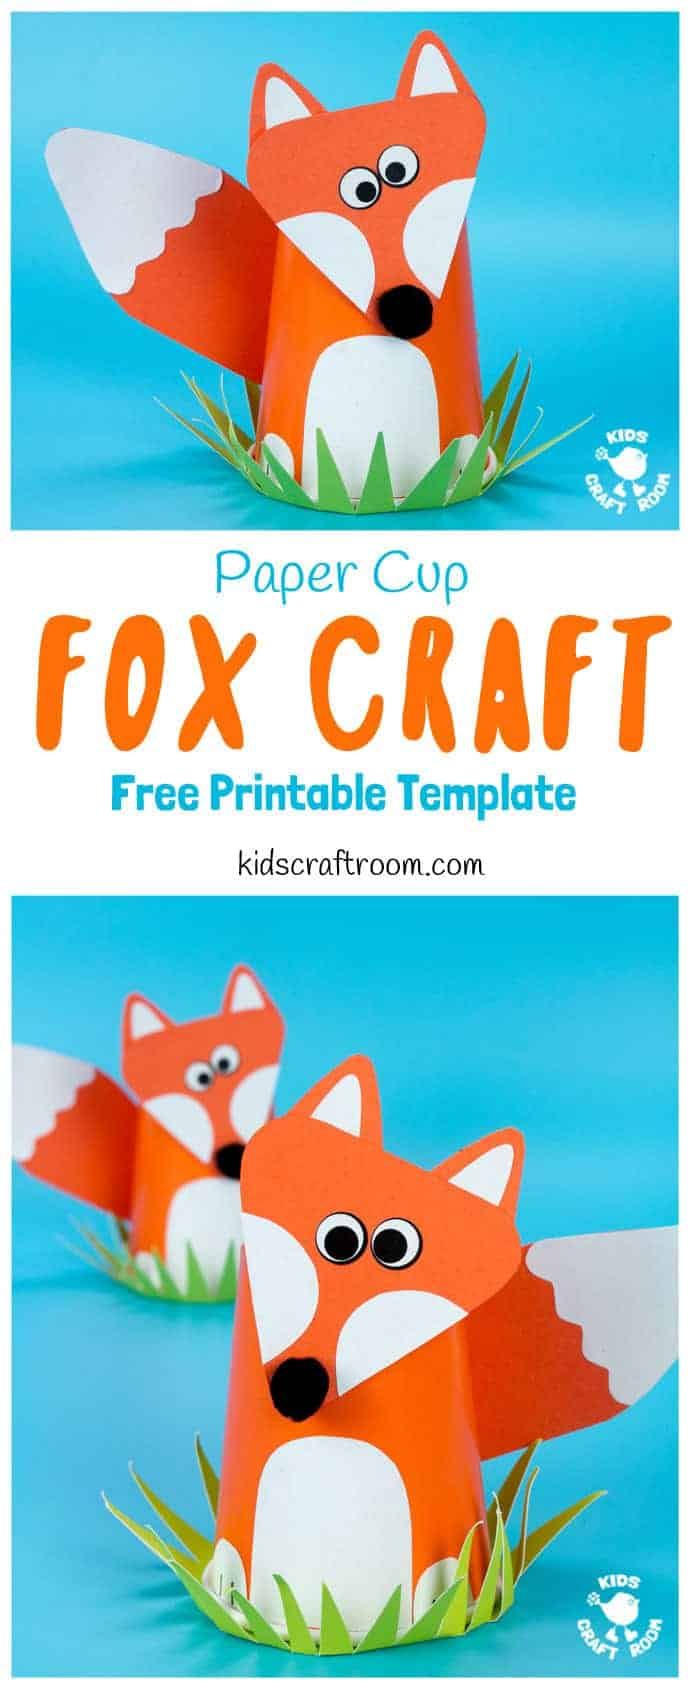 CUTE PAPER CUP FOX CRAFT FOR KIDS. Fox crafts are so fun and this paper cup craft is easy to make with the free printable fox craft template. Such a fun woodland animal craft. #fox #foxcraft #foxcrafts #foxes #papercups #papercup #papercupcrafts #woodlandanimals #animalcrafts #woodlandanimalcrafts #kidscrafts #kidcraft #freeprintable #printable #printabletemplates